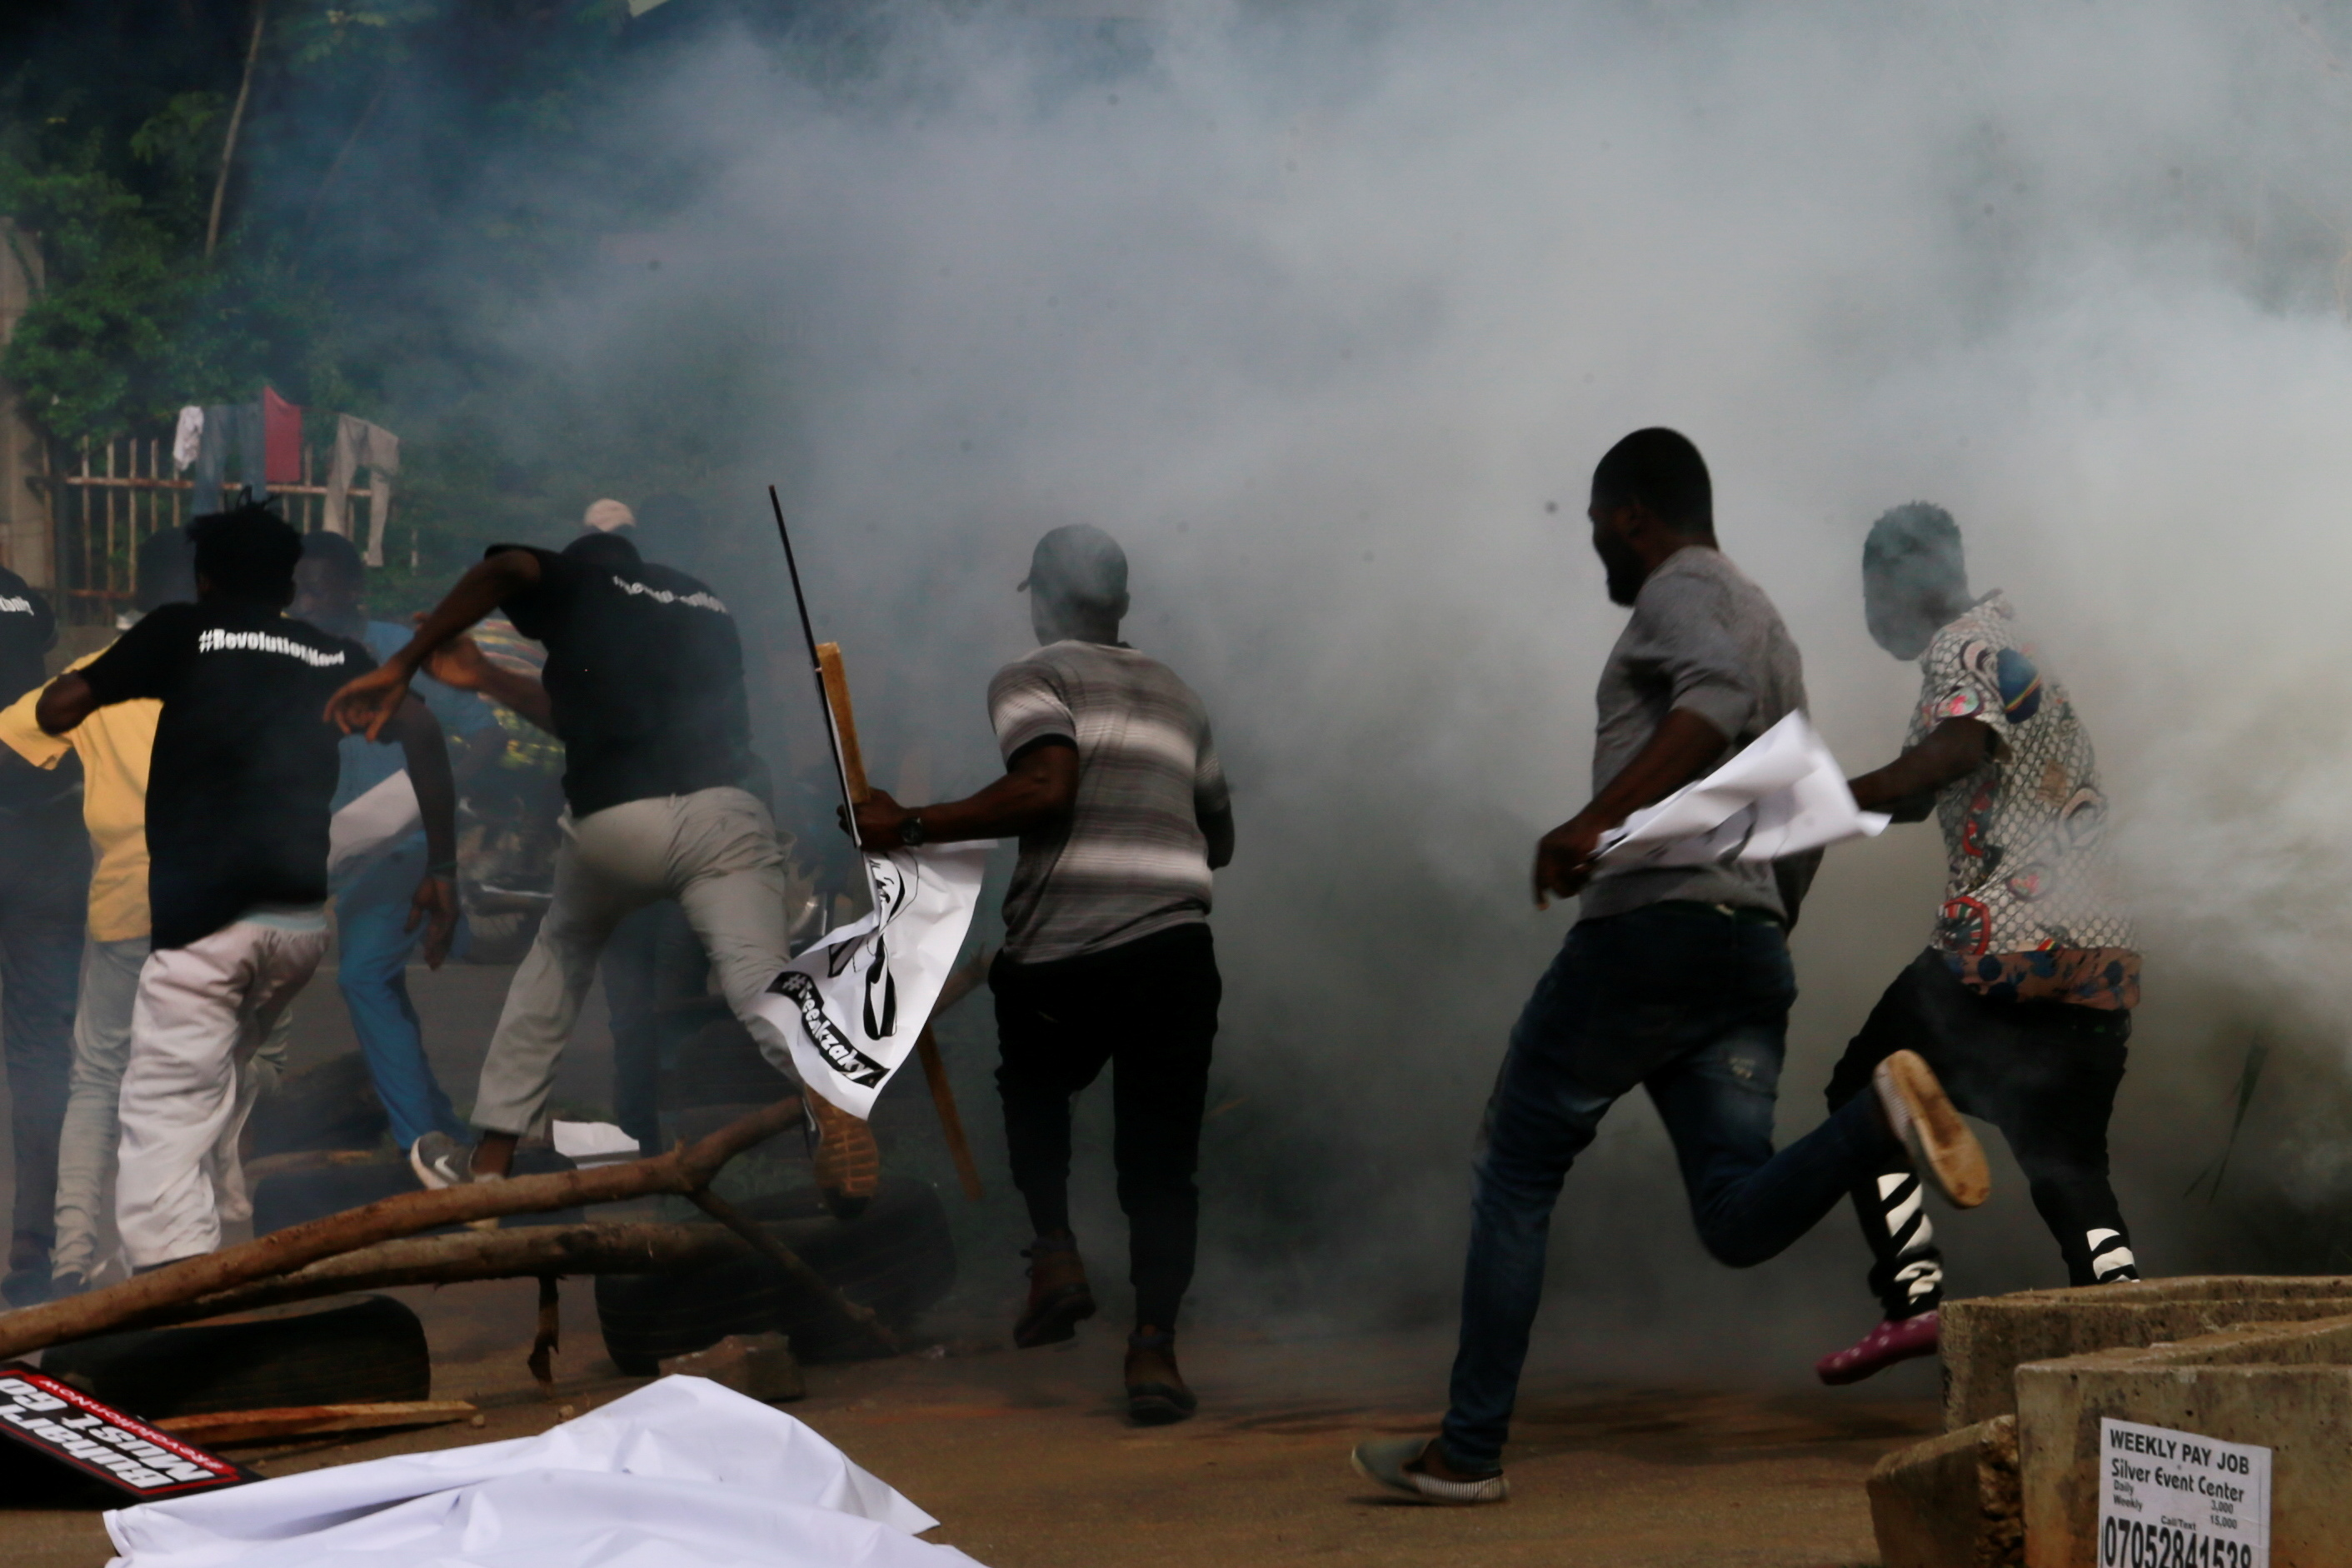 Protesters run after police fired teargas during a June 12 Democracy Day rally in Abuja, Nigeria June 12, 2021. REUTERS/Afolabi Sotunde